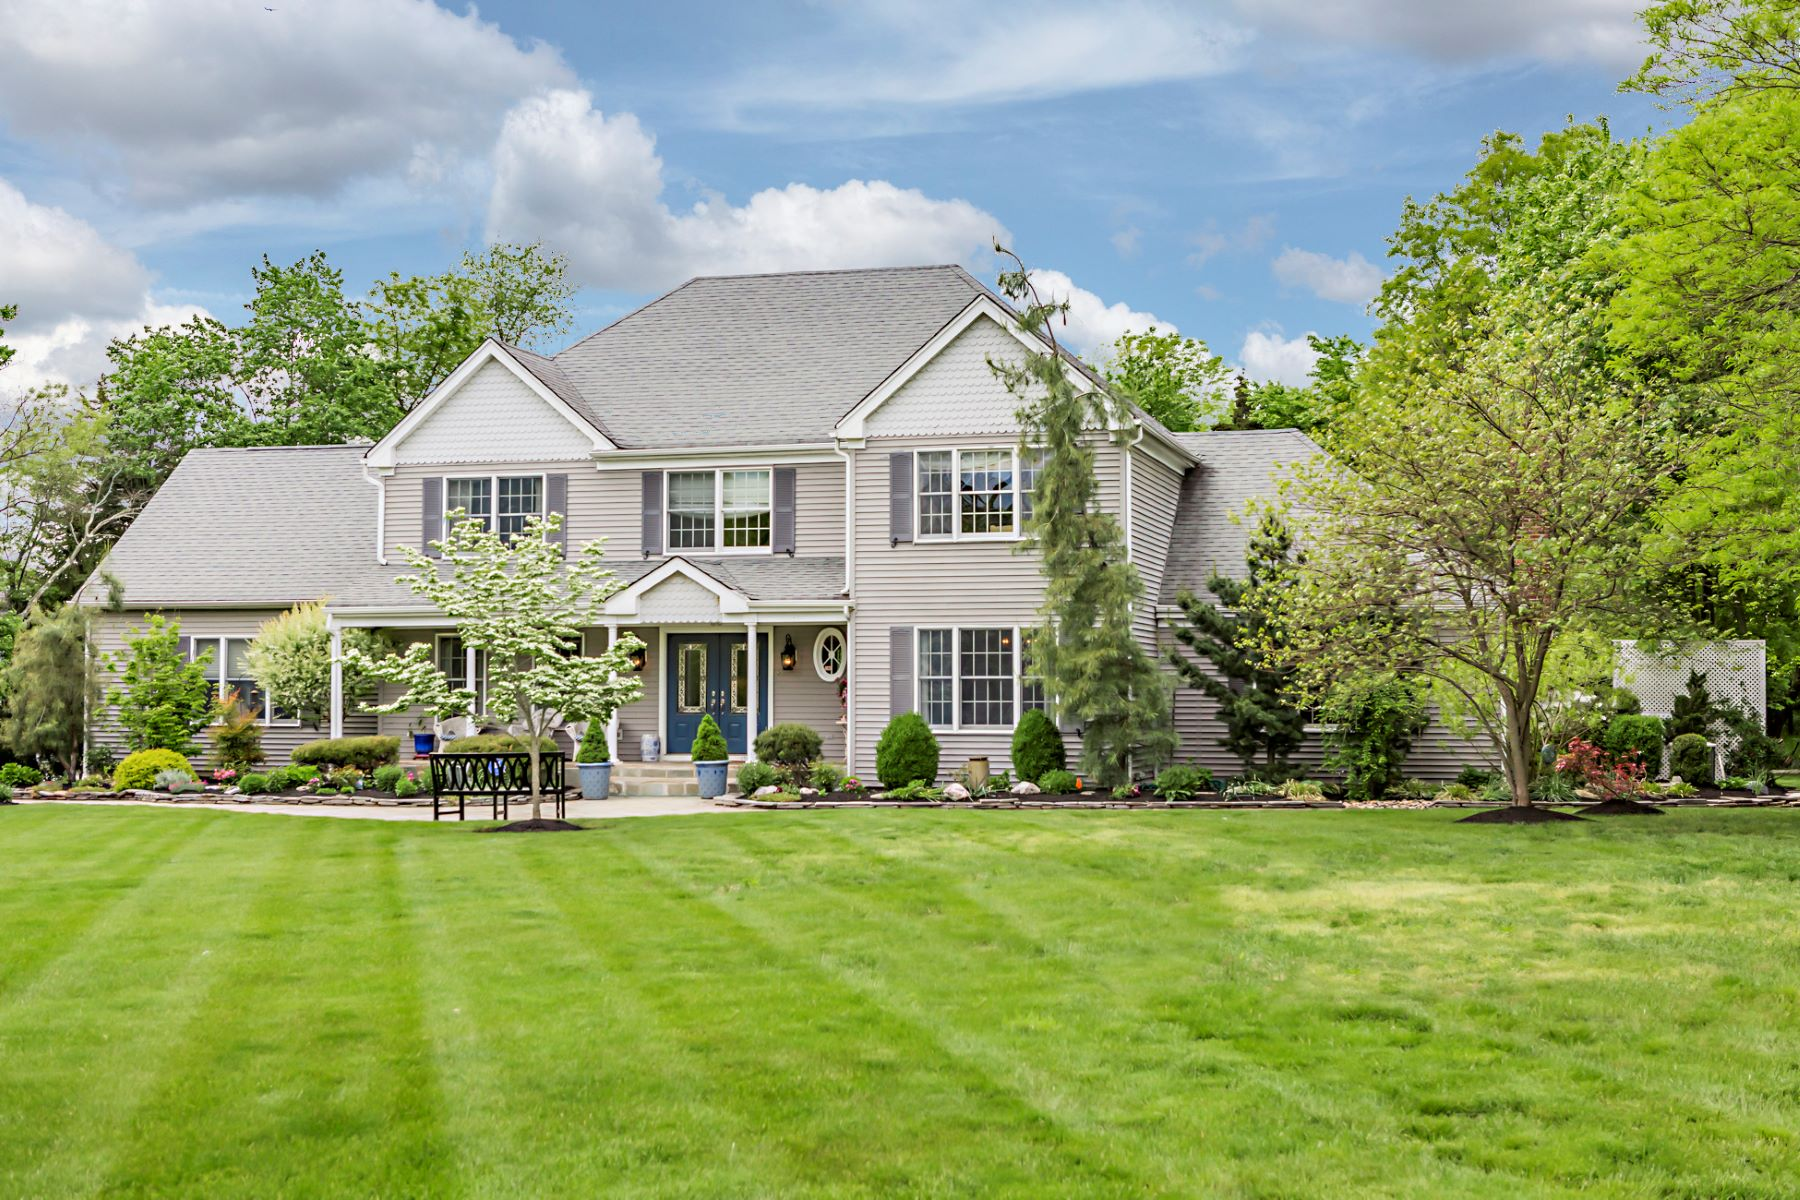 Single Family Home for Sale at What Dreams Are Made Of - Montgomery Township 30 Summit Road Belle Mead, New Jersey 08502 United States